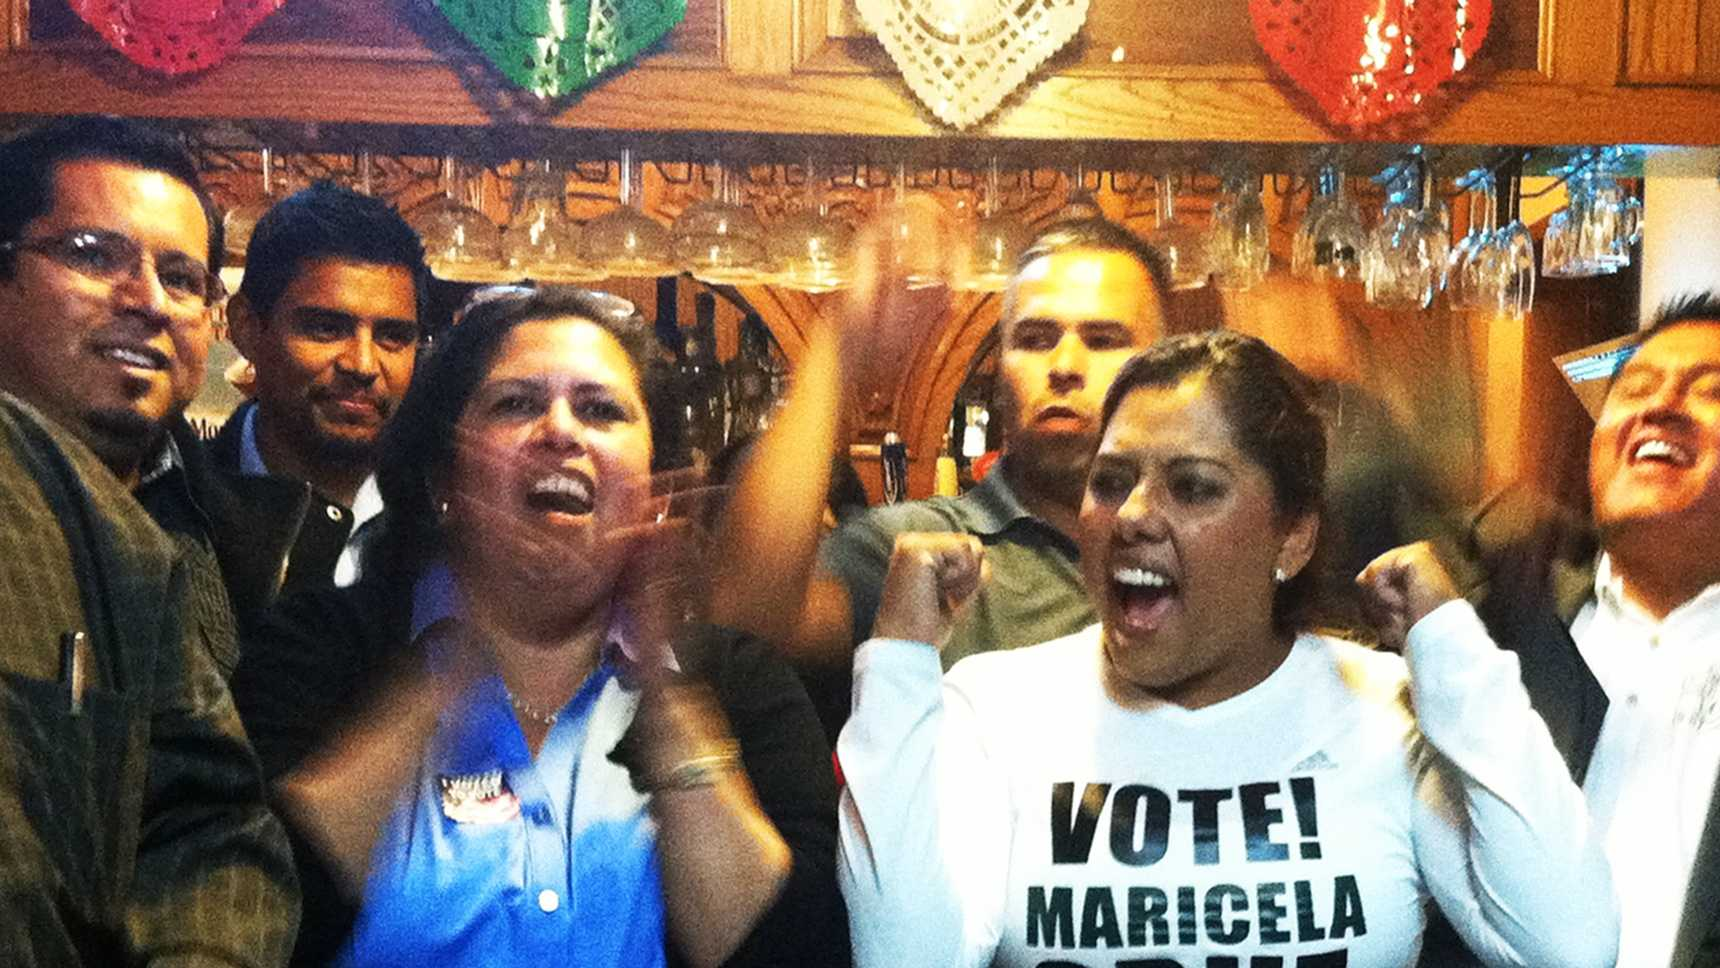 Alisal school board candidates Noemi Armenta, left, and Maricela Cruz, right, cheered together at an election party Tuesday night.